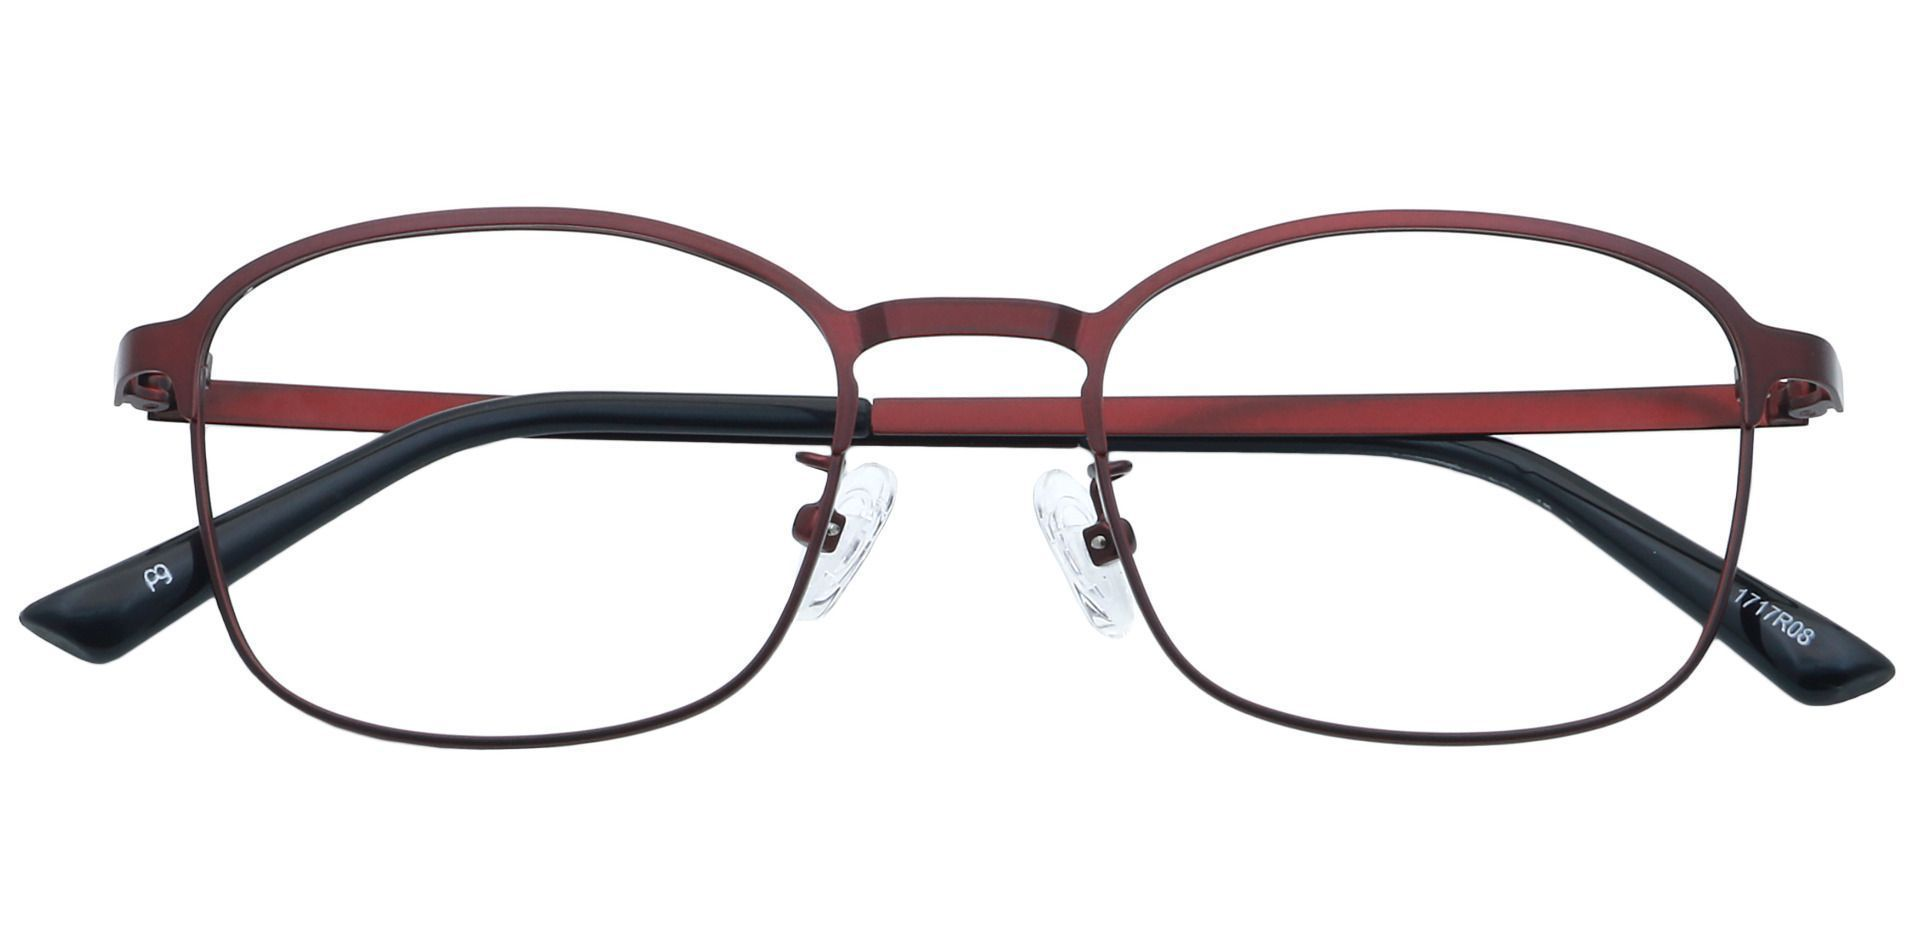 Carmen Square Eyeglasses Frame - Red